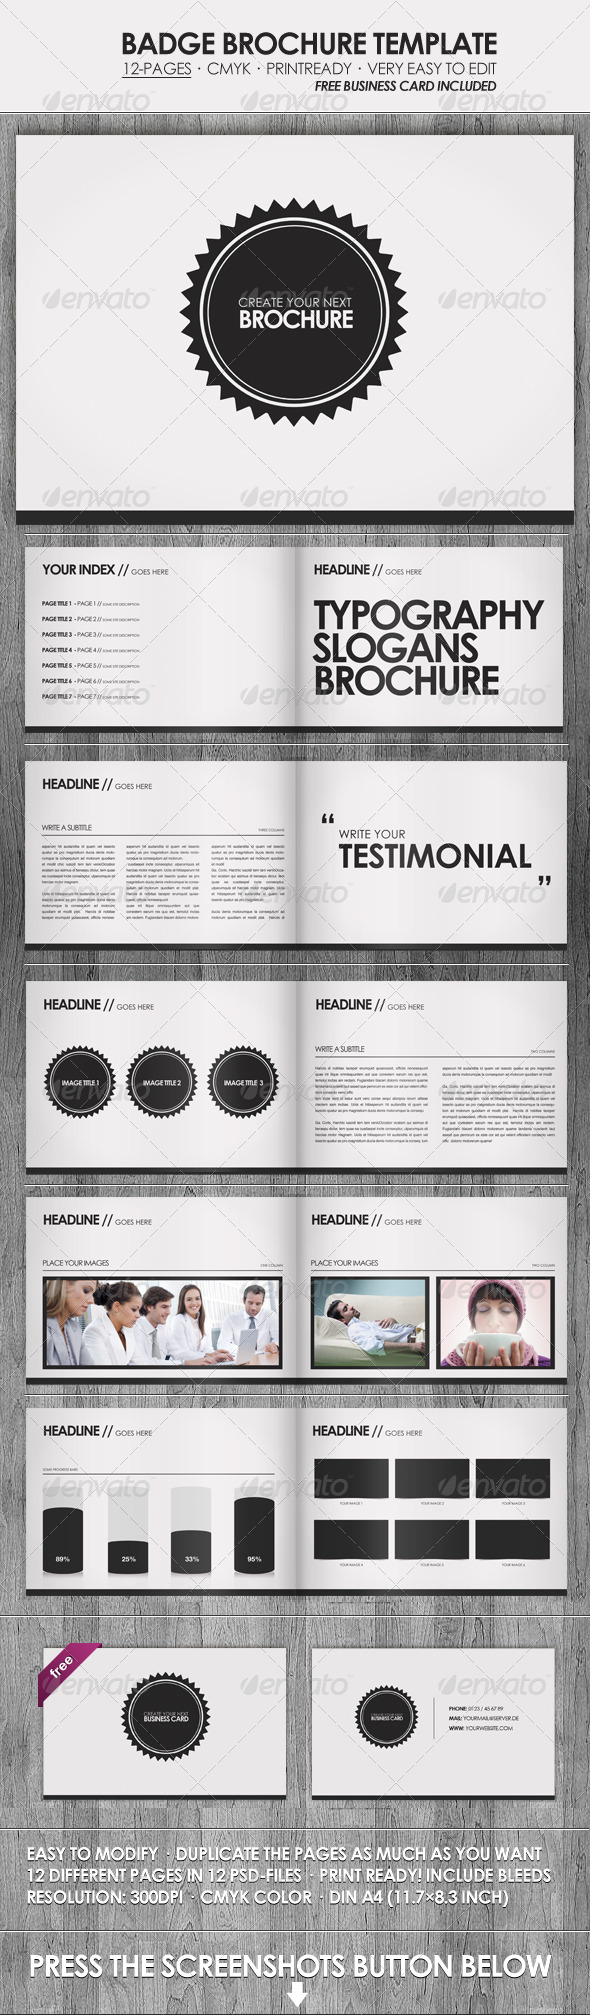 Badge - Brochure / Presentation Template - Corporate Brochures